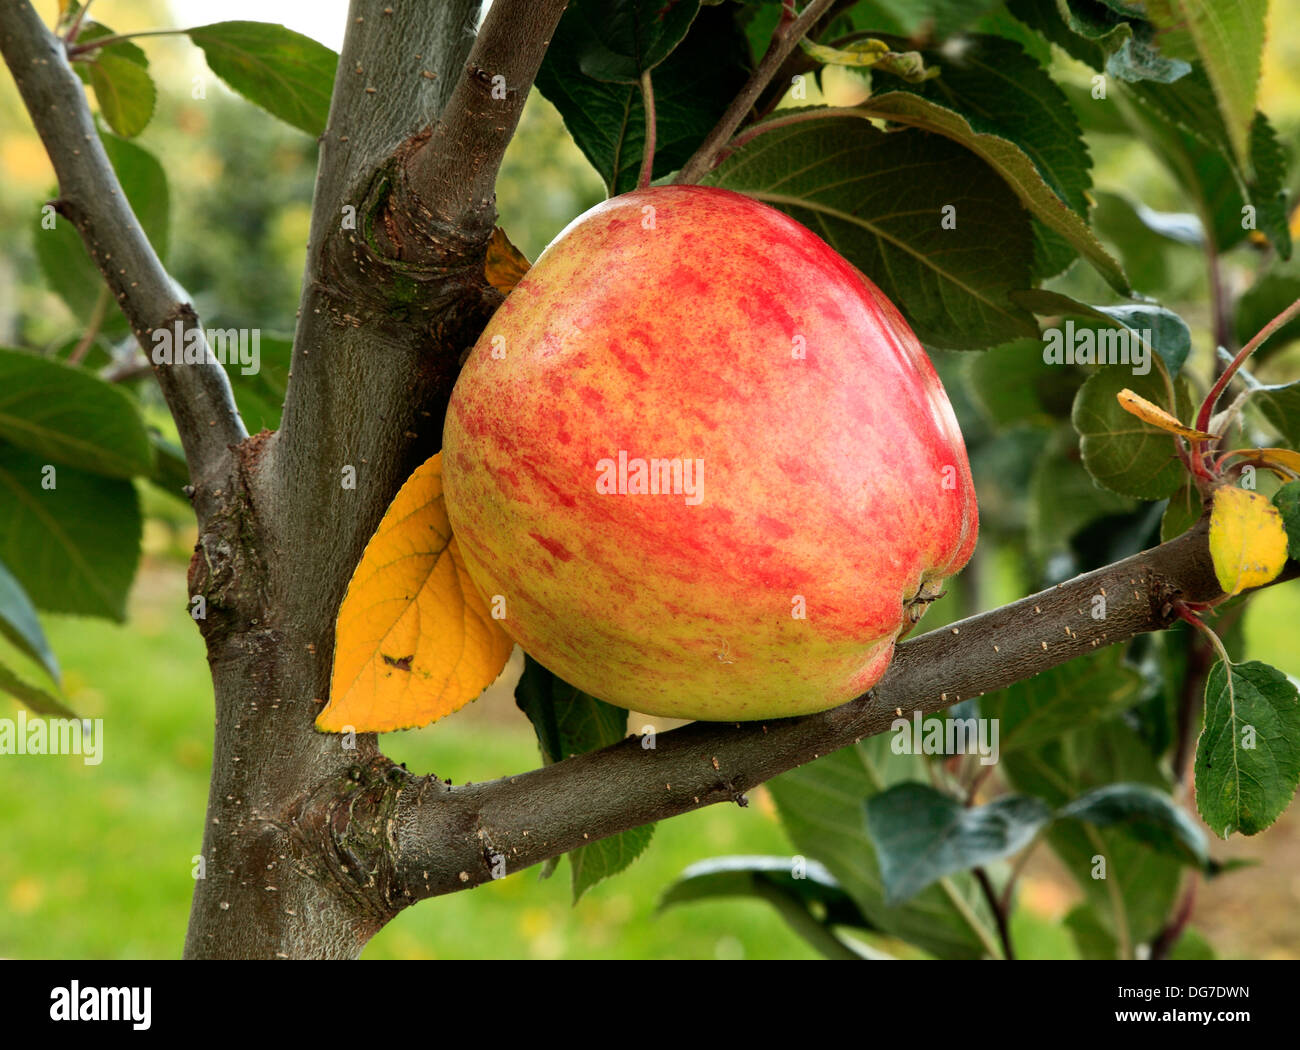 Apple, 'Dr. Clifford', variety, malus domestica, apples varieties growing on tree Norfolk England UK - Stock Image